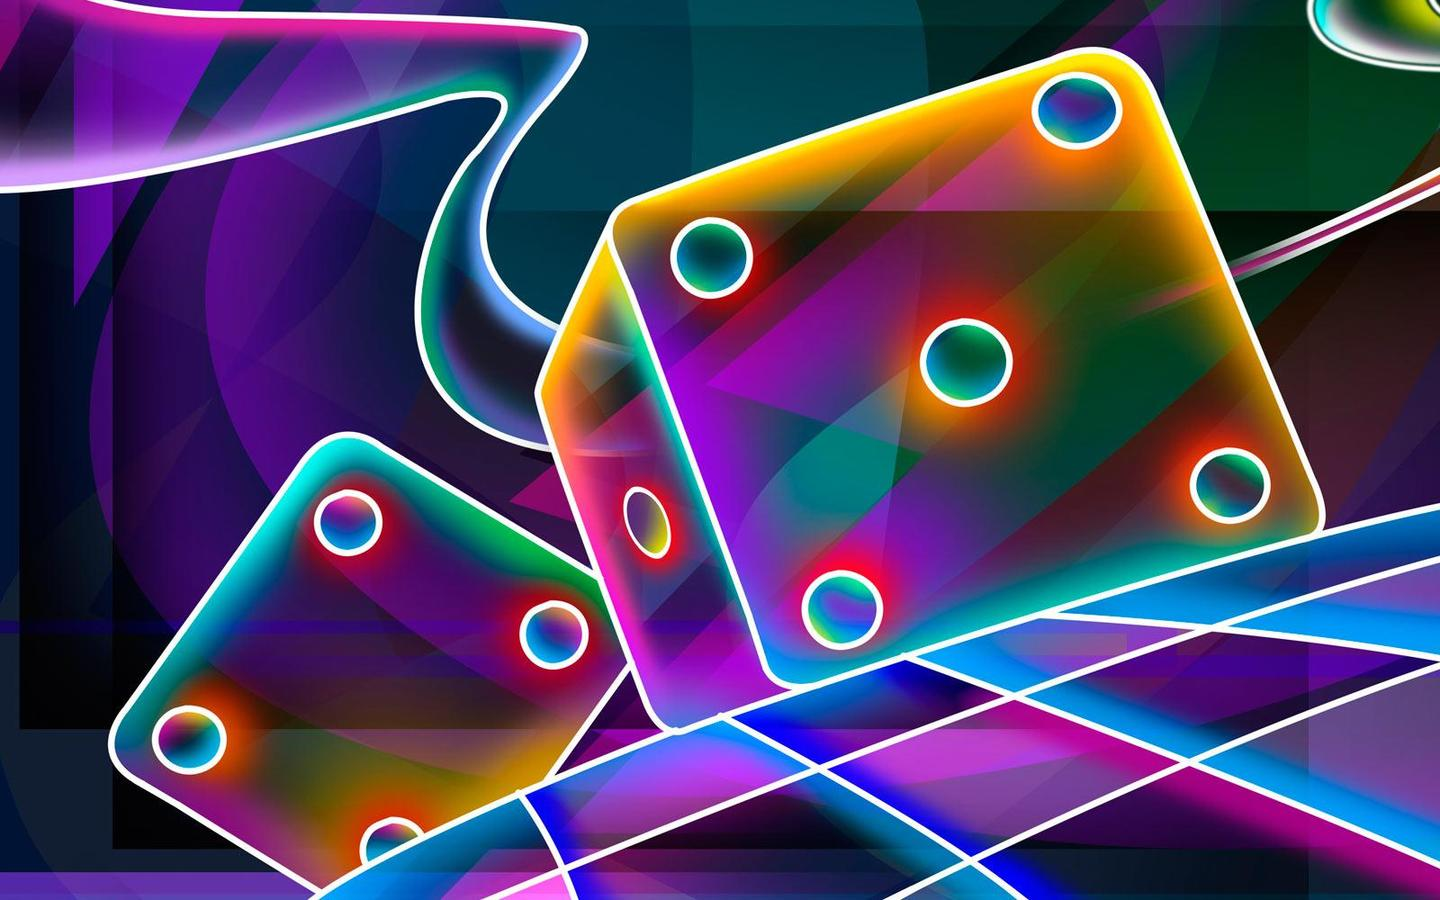 neon+wallpapers+for+mobile+%281%29.jpg